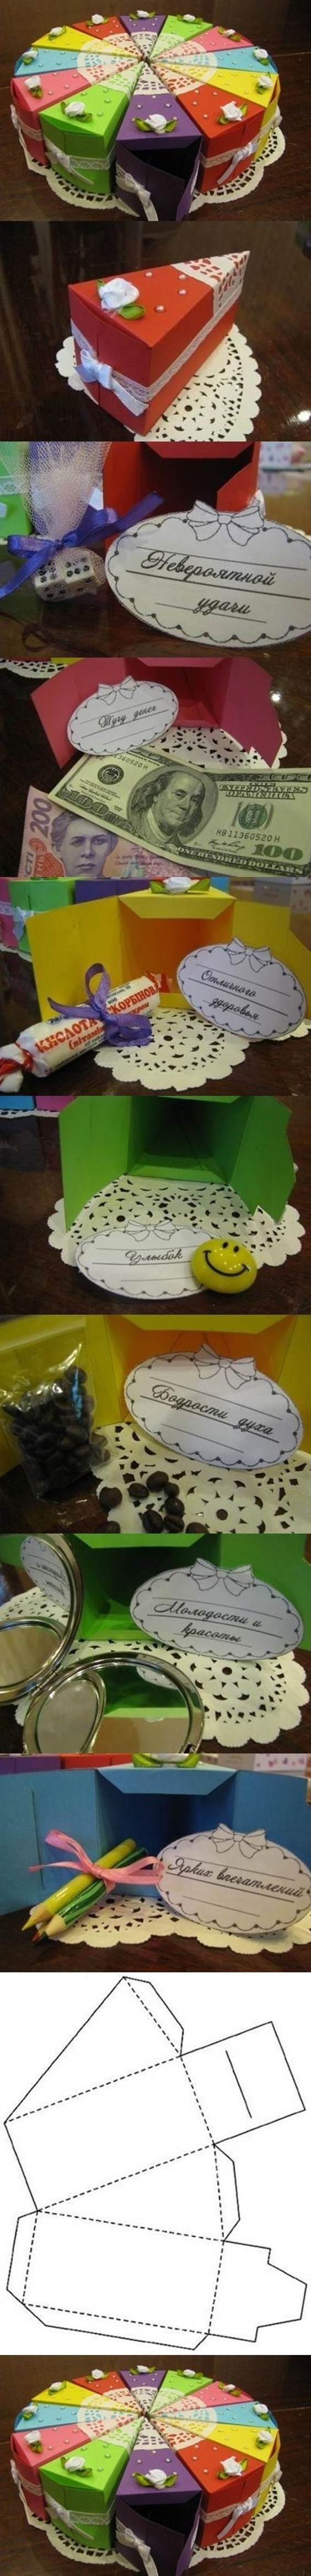 DIY Cake Shaped Gift Boxes | iCreativeIdeas.com Like Us on Facebook ==> https://www.facebook.com/icreativeideas: